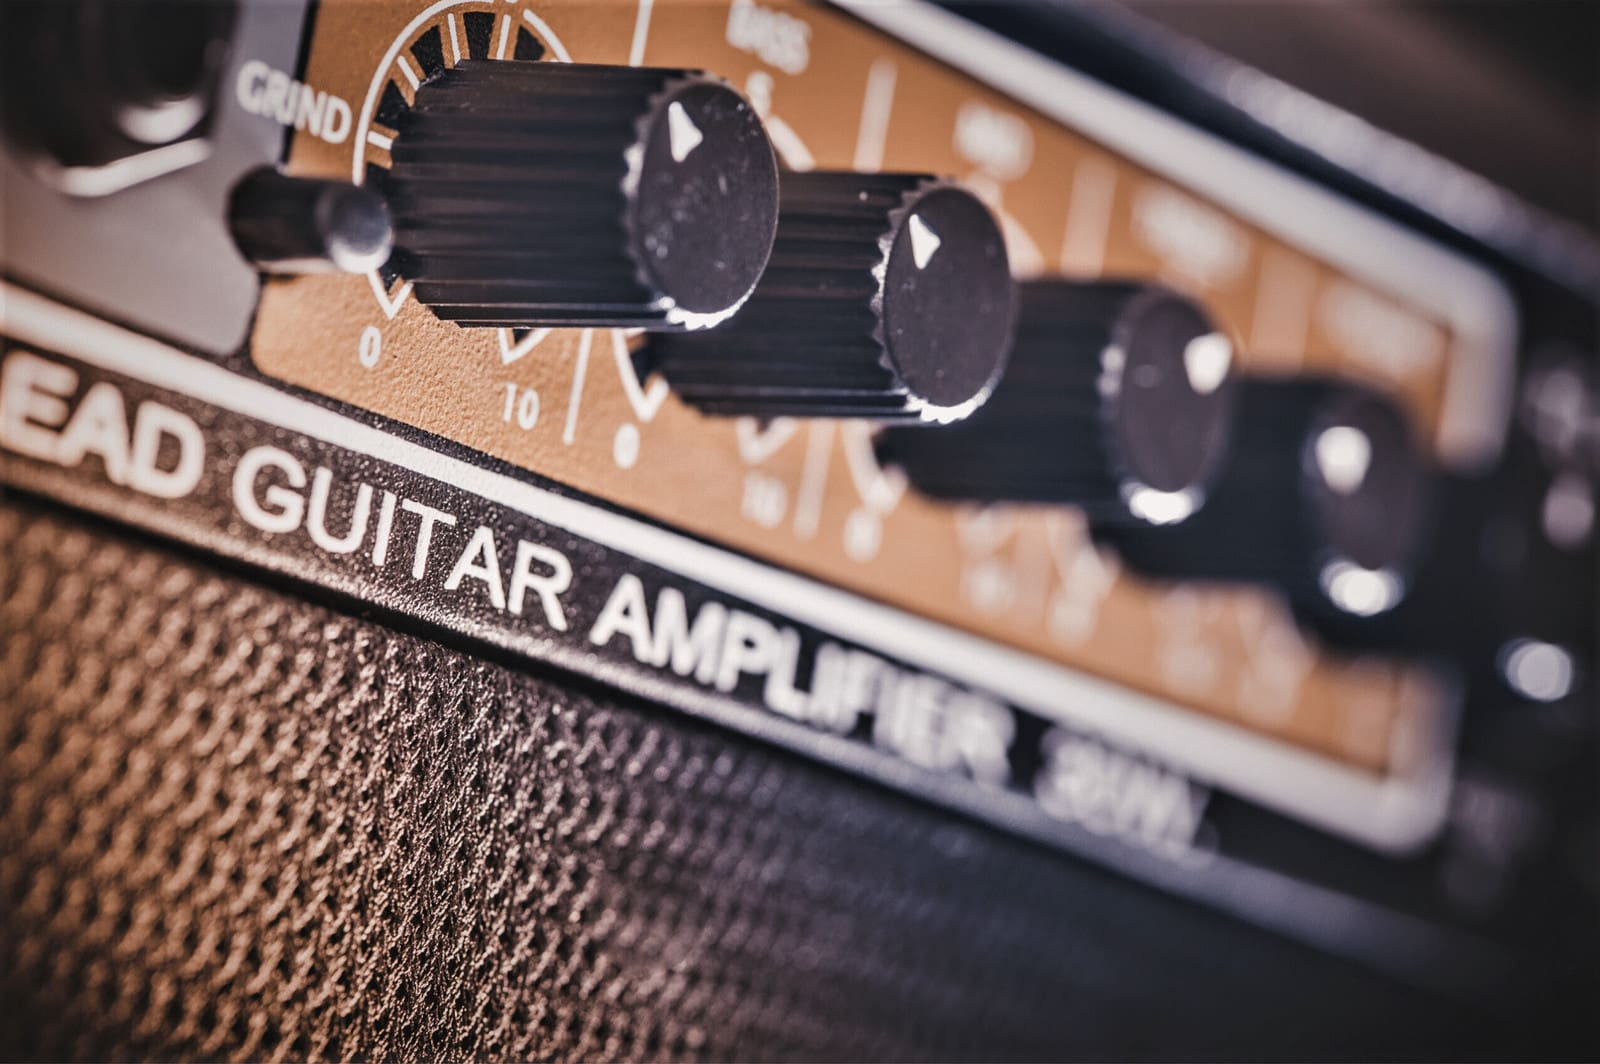 You are currently viewing 5 Best 30 Watt Tube Guitar Amps in 2021 – Buyer's Guide